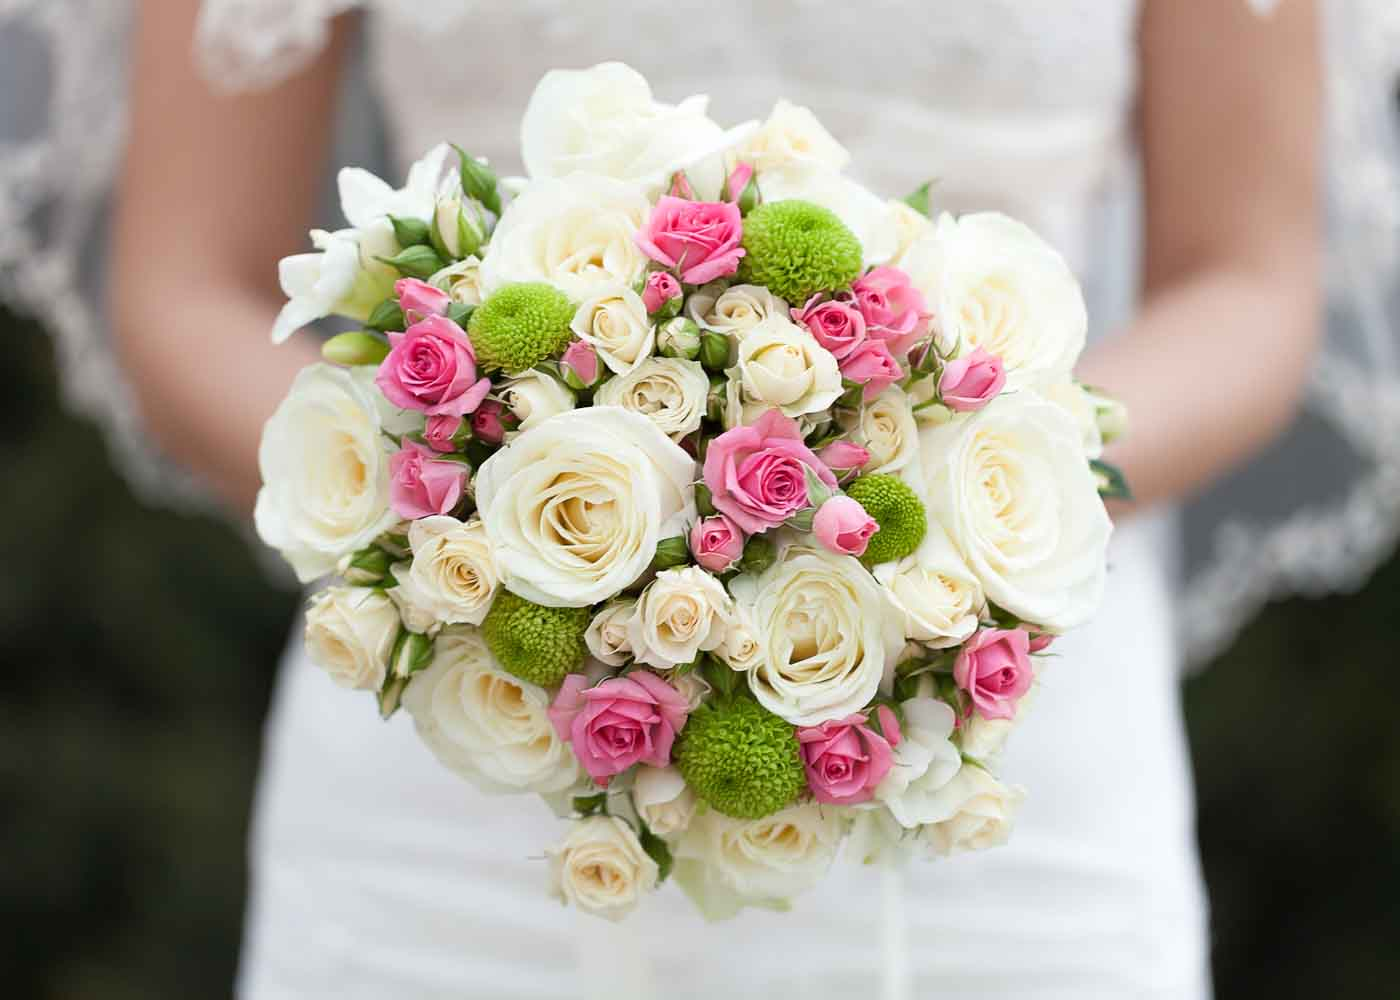 Preserve the bride's bouquet in one of several ways.